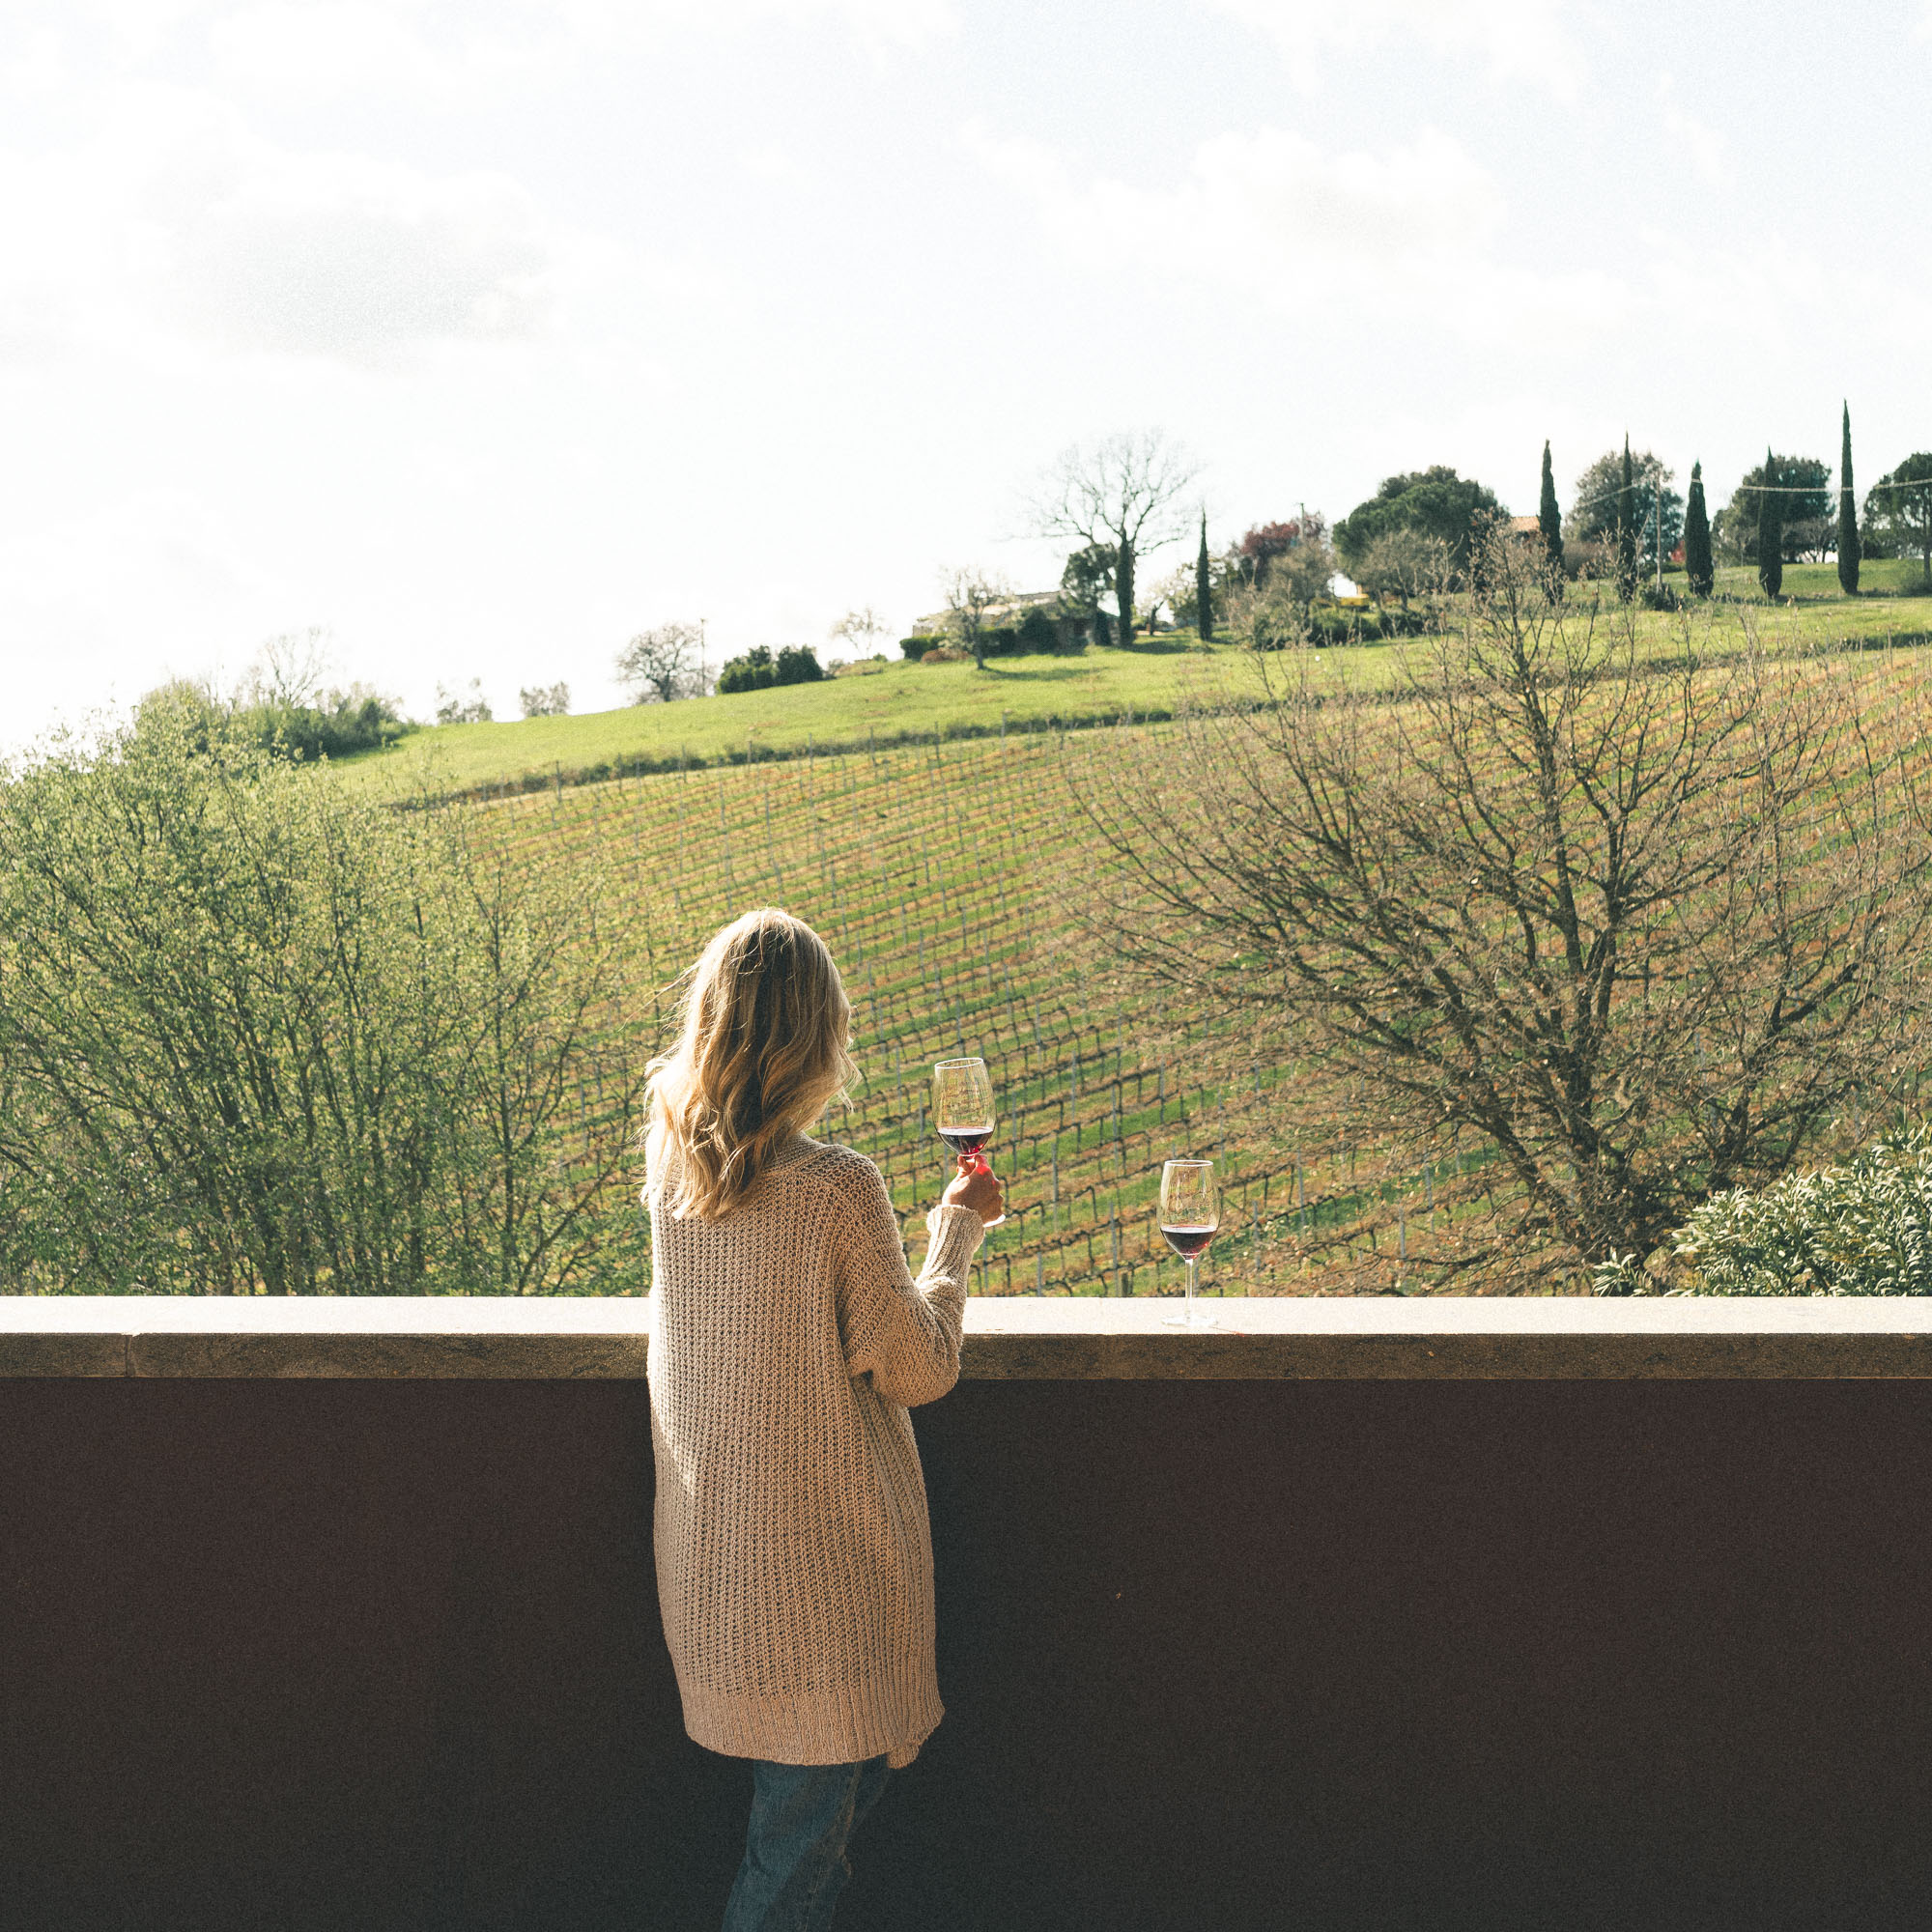 Wine tasting in southern Tuscany, Italy with views over vineyard